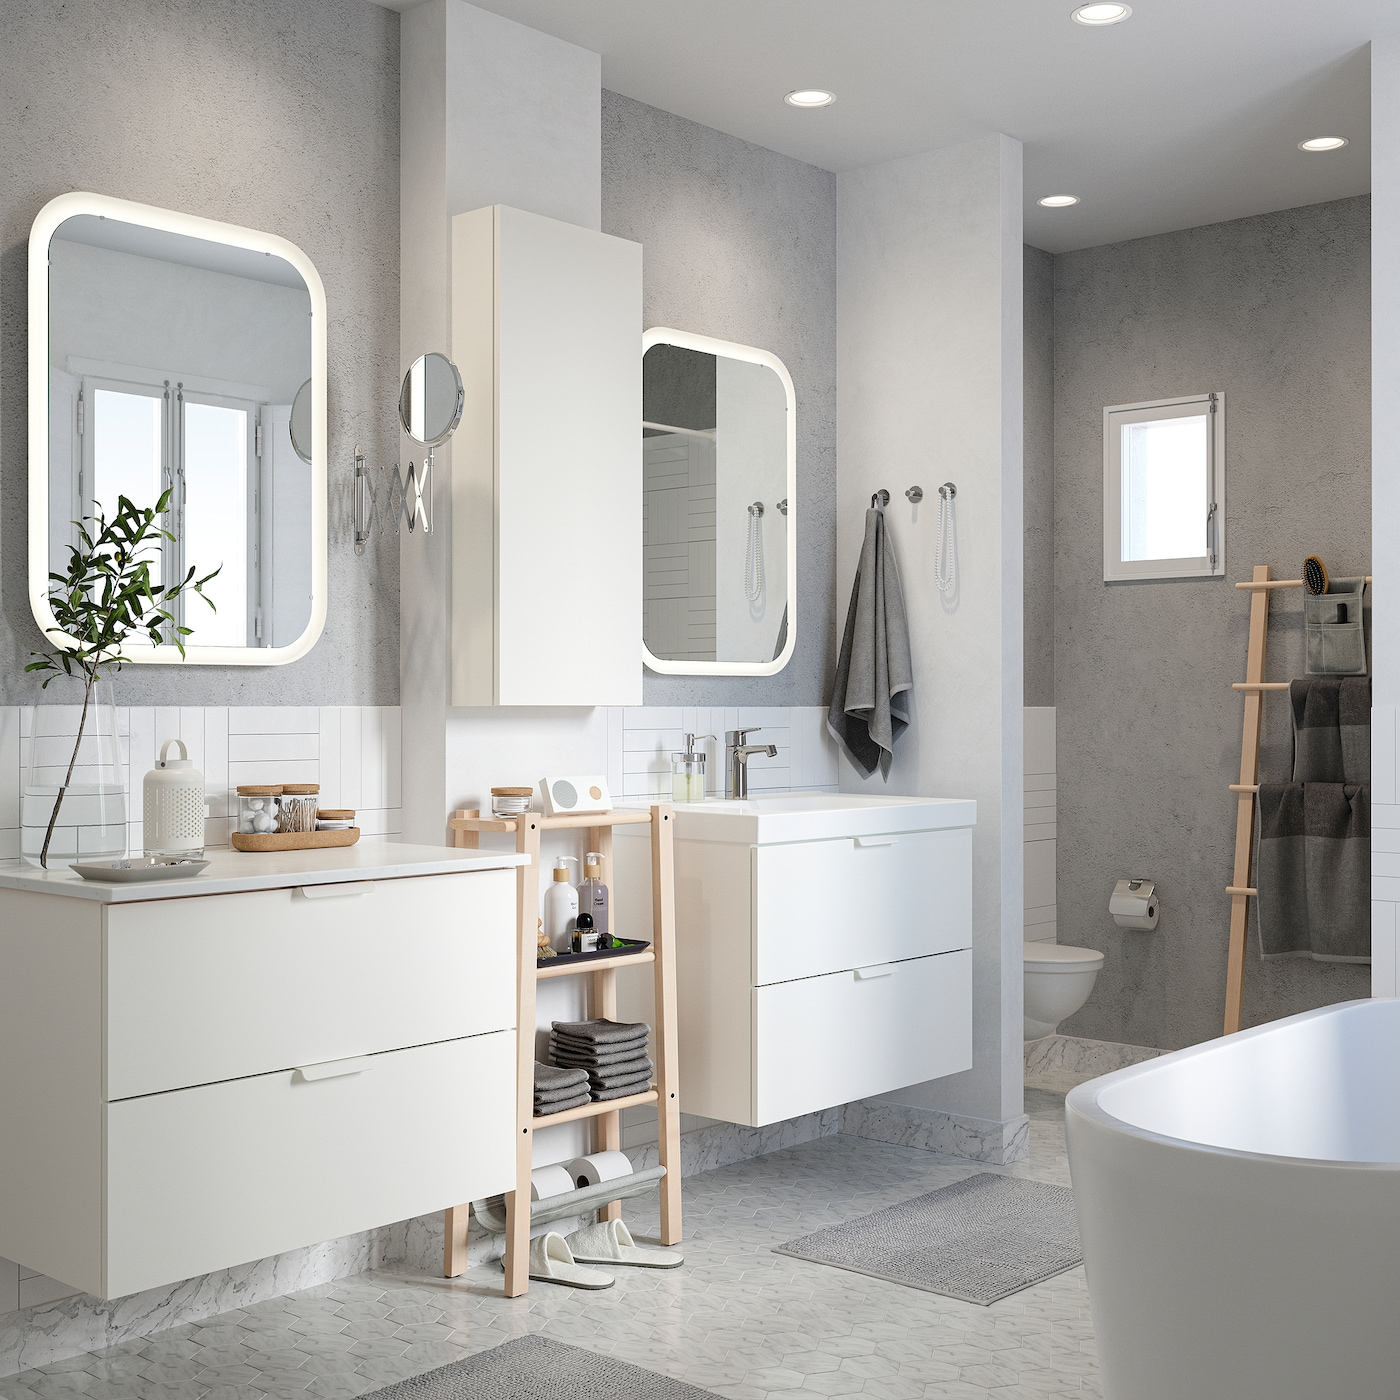 Buy Bathroom Furniture Accessories Online IKEA UAE - IKEA